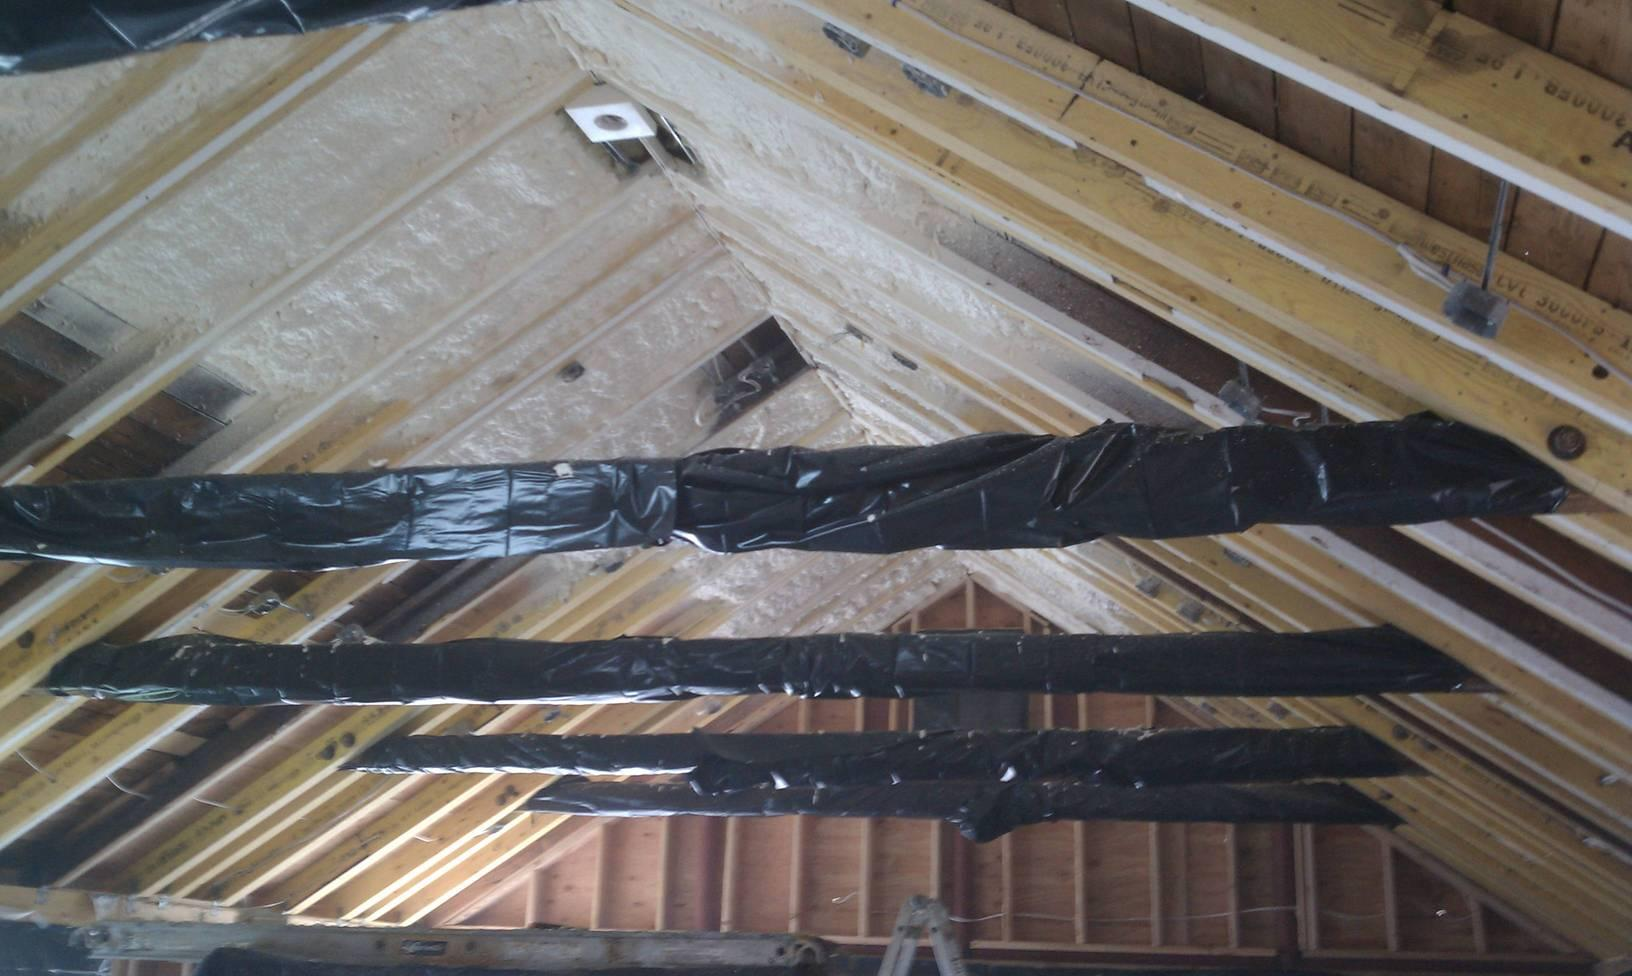 Job prep and spray foam insulation go together like boots and laces!